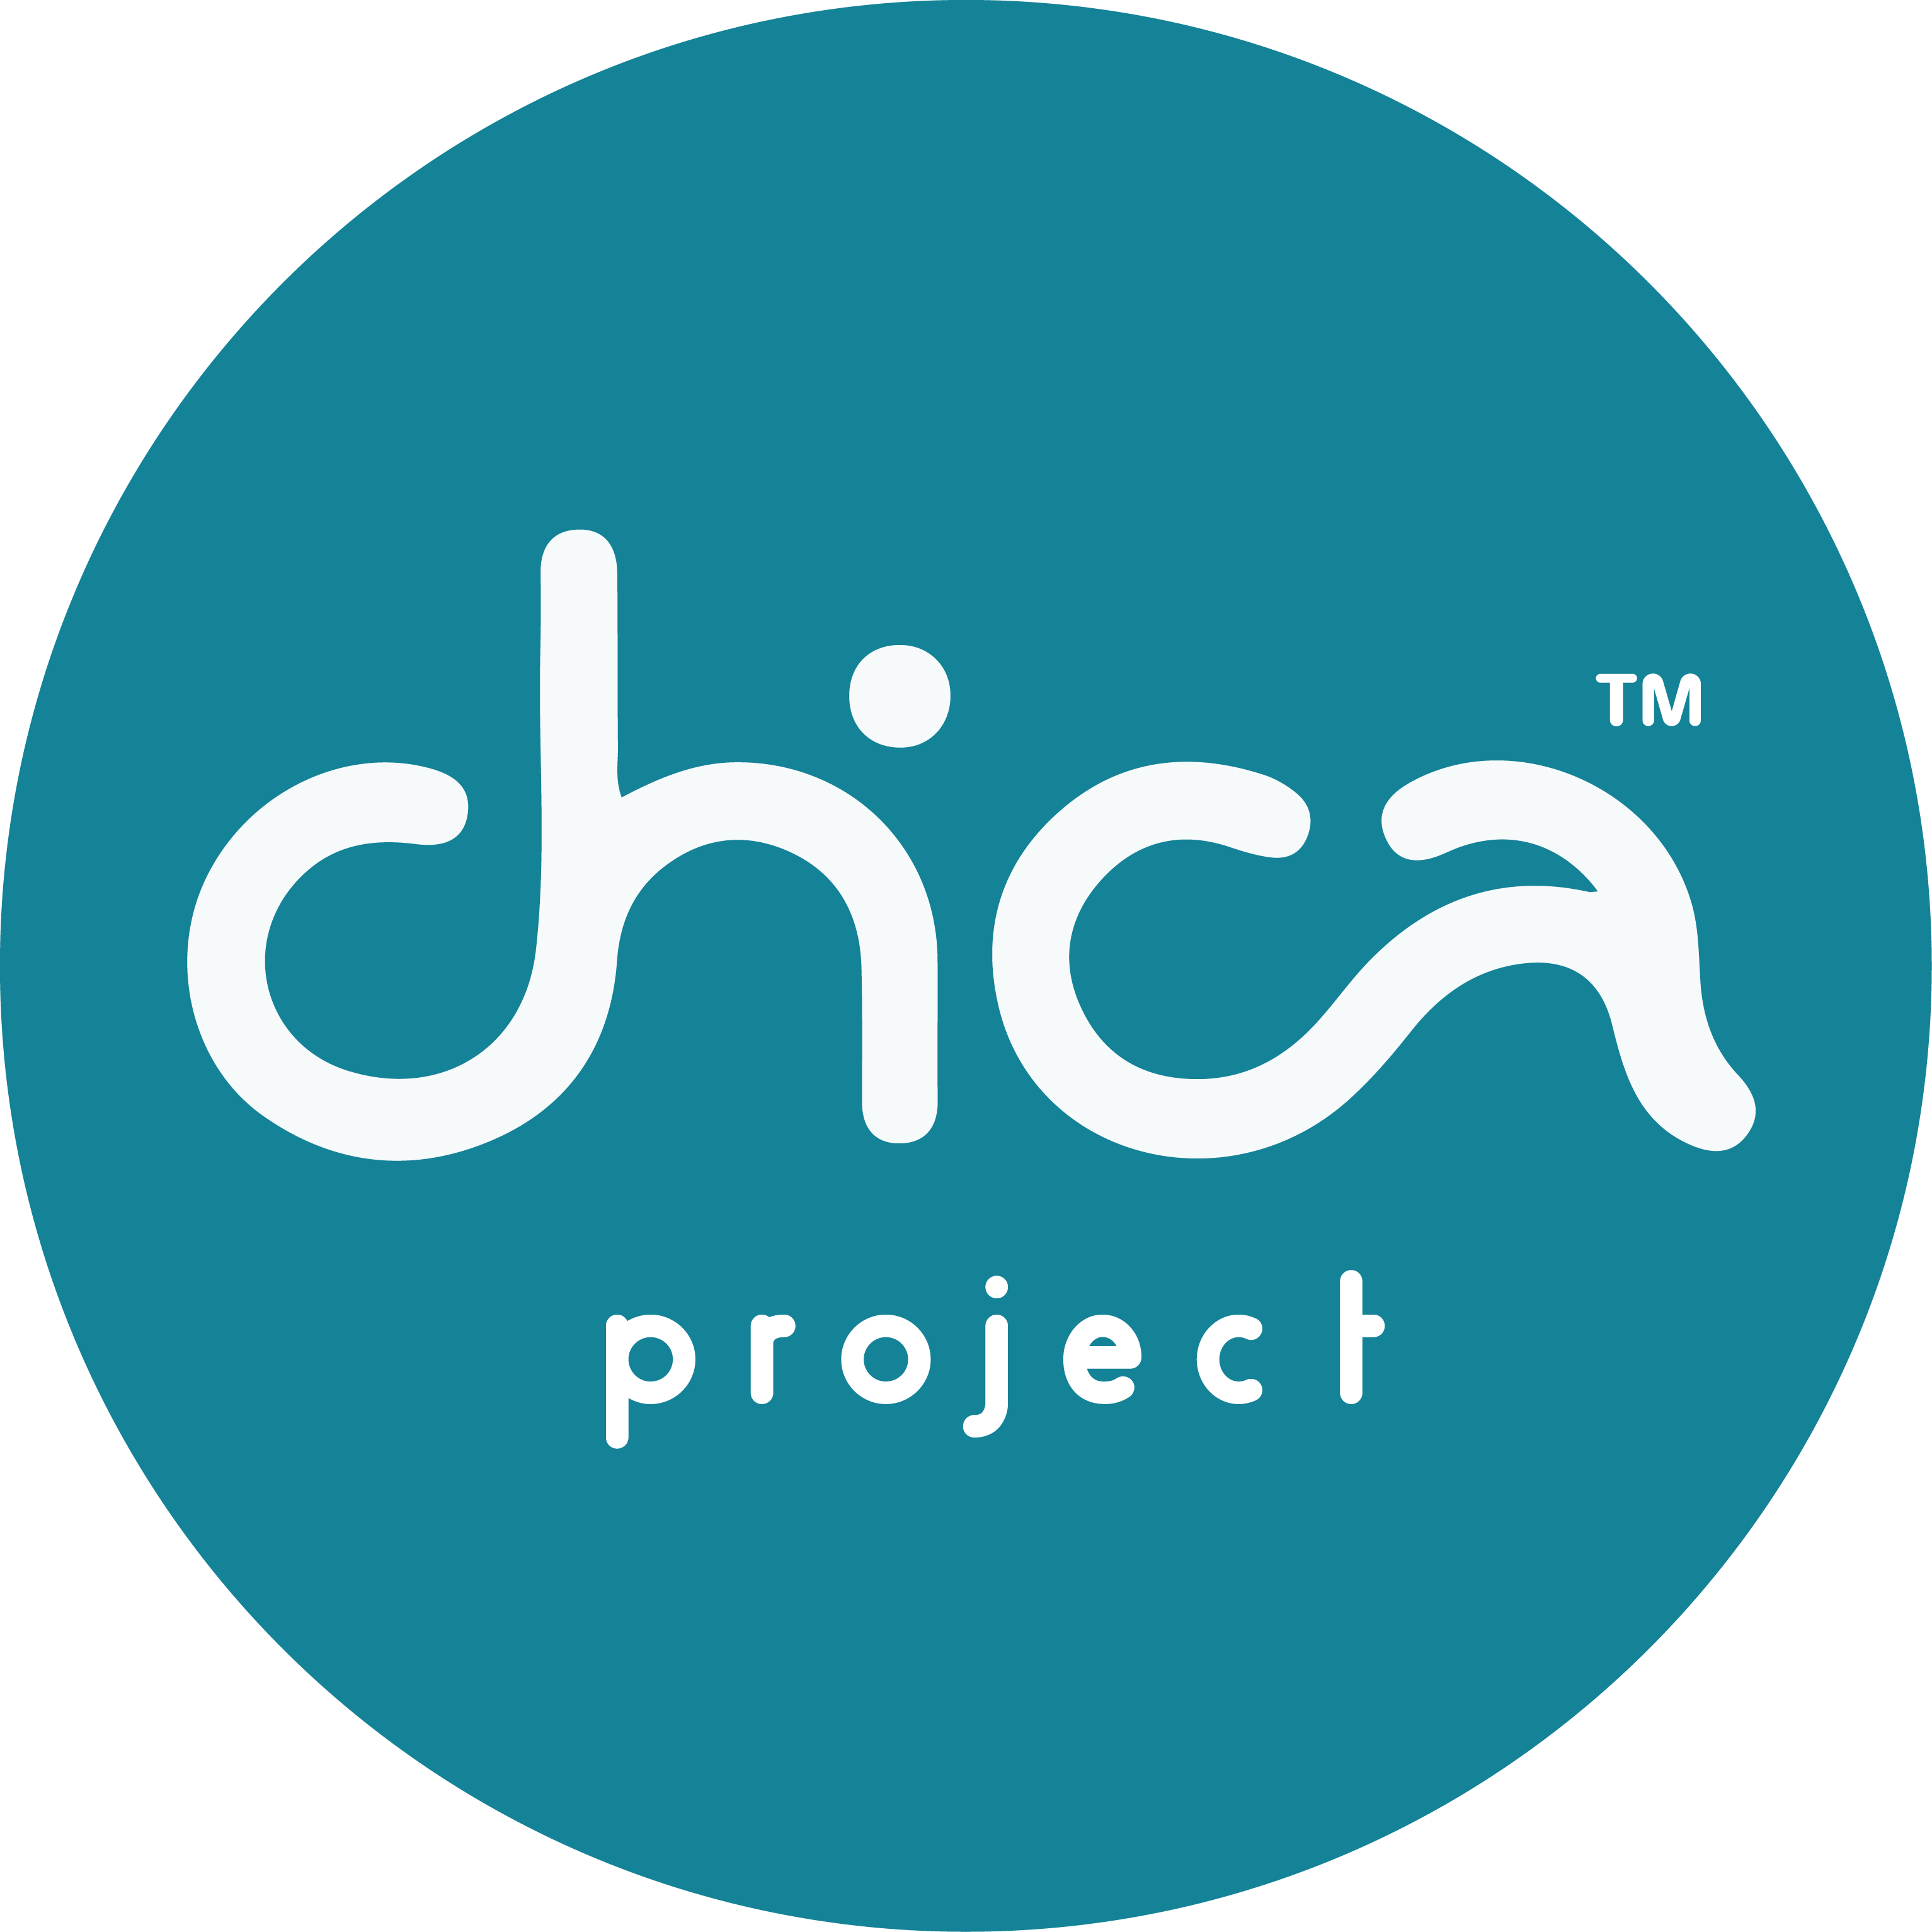 Chica-Project-Logo